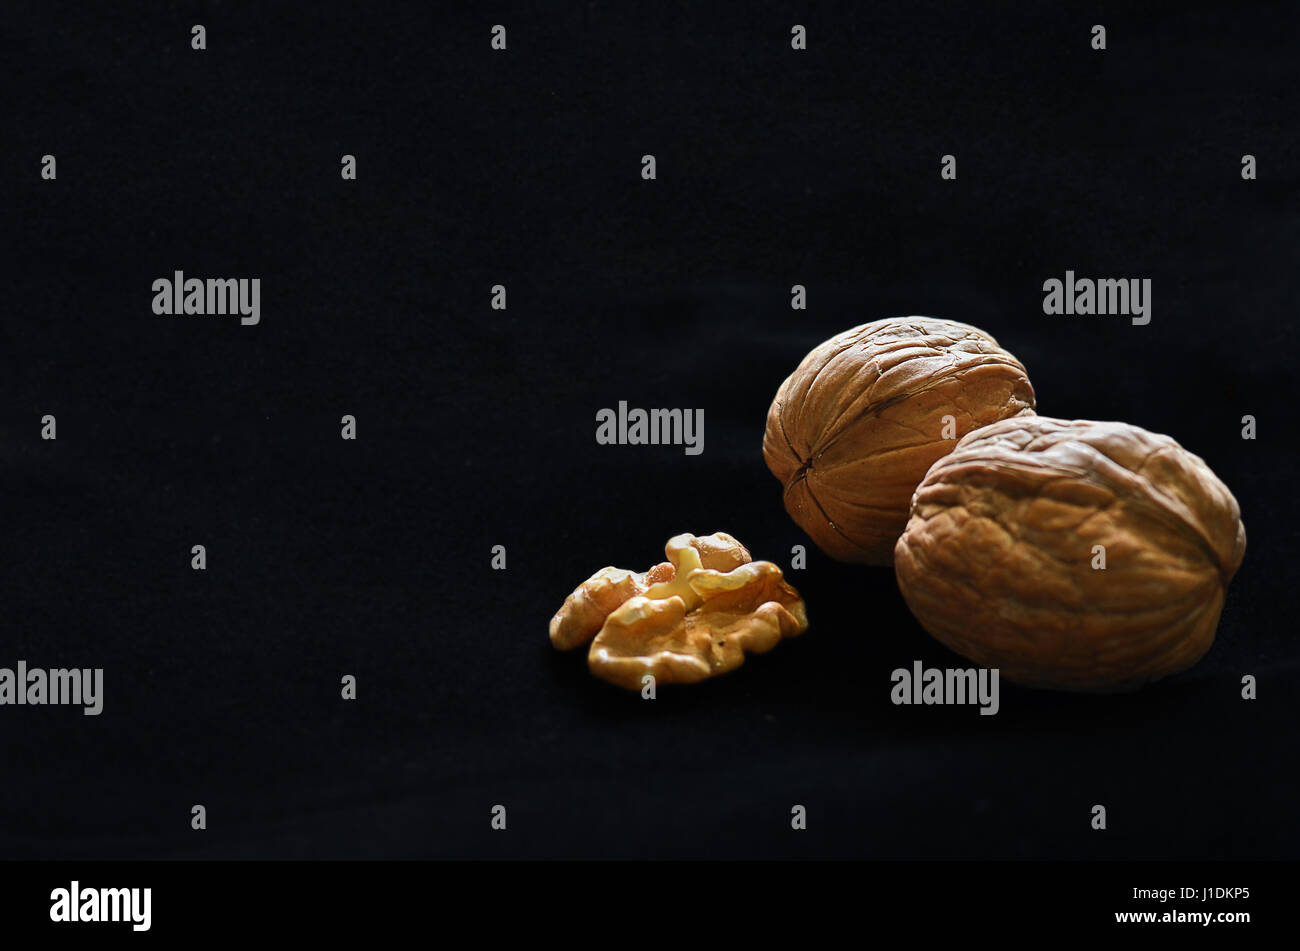 Walnuts in black background with copy space Stock Photo